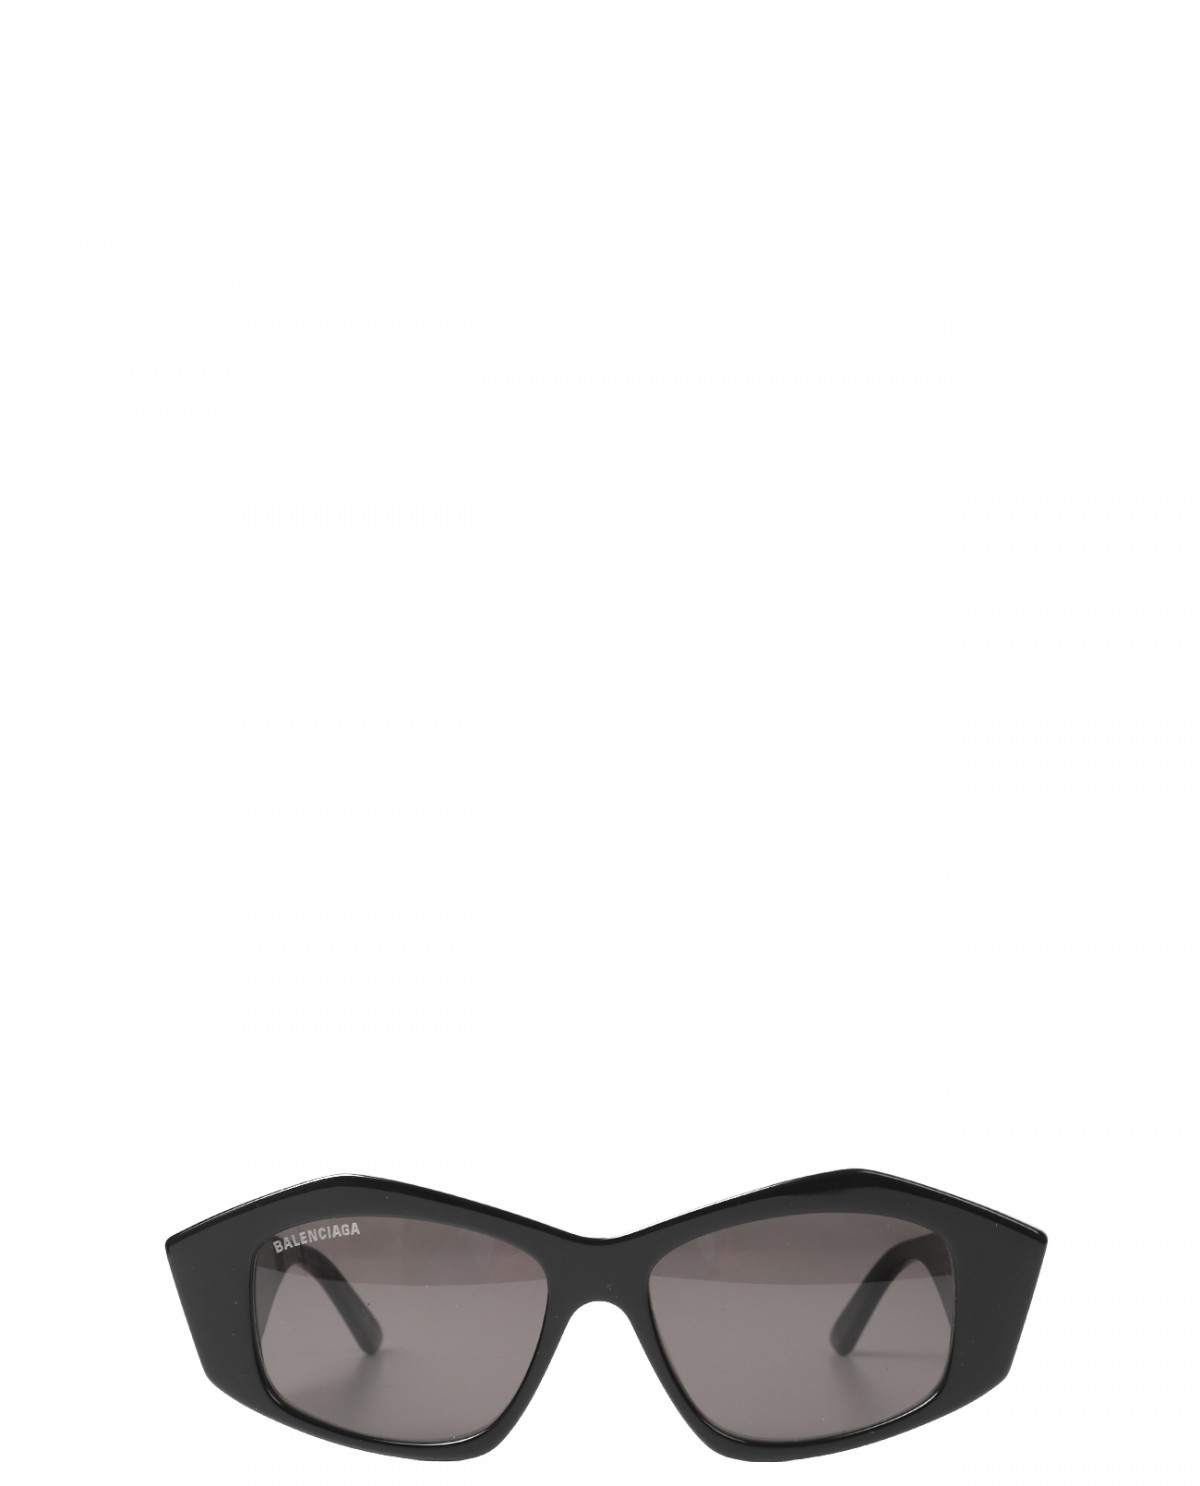 Balenciaga black Cut Square sunglasses